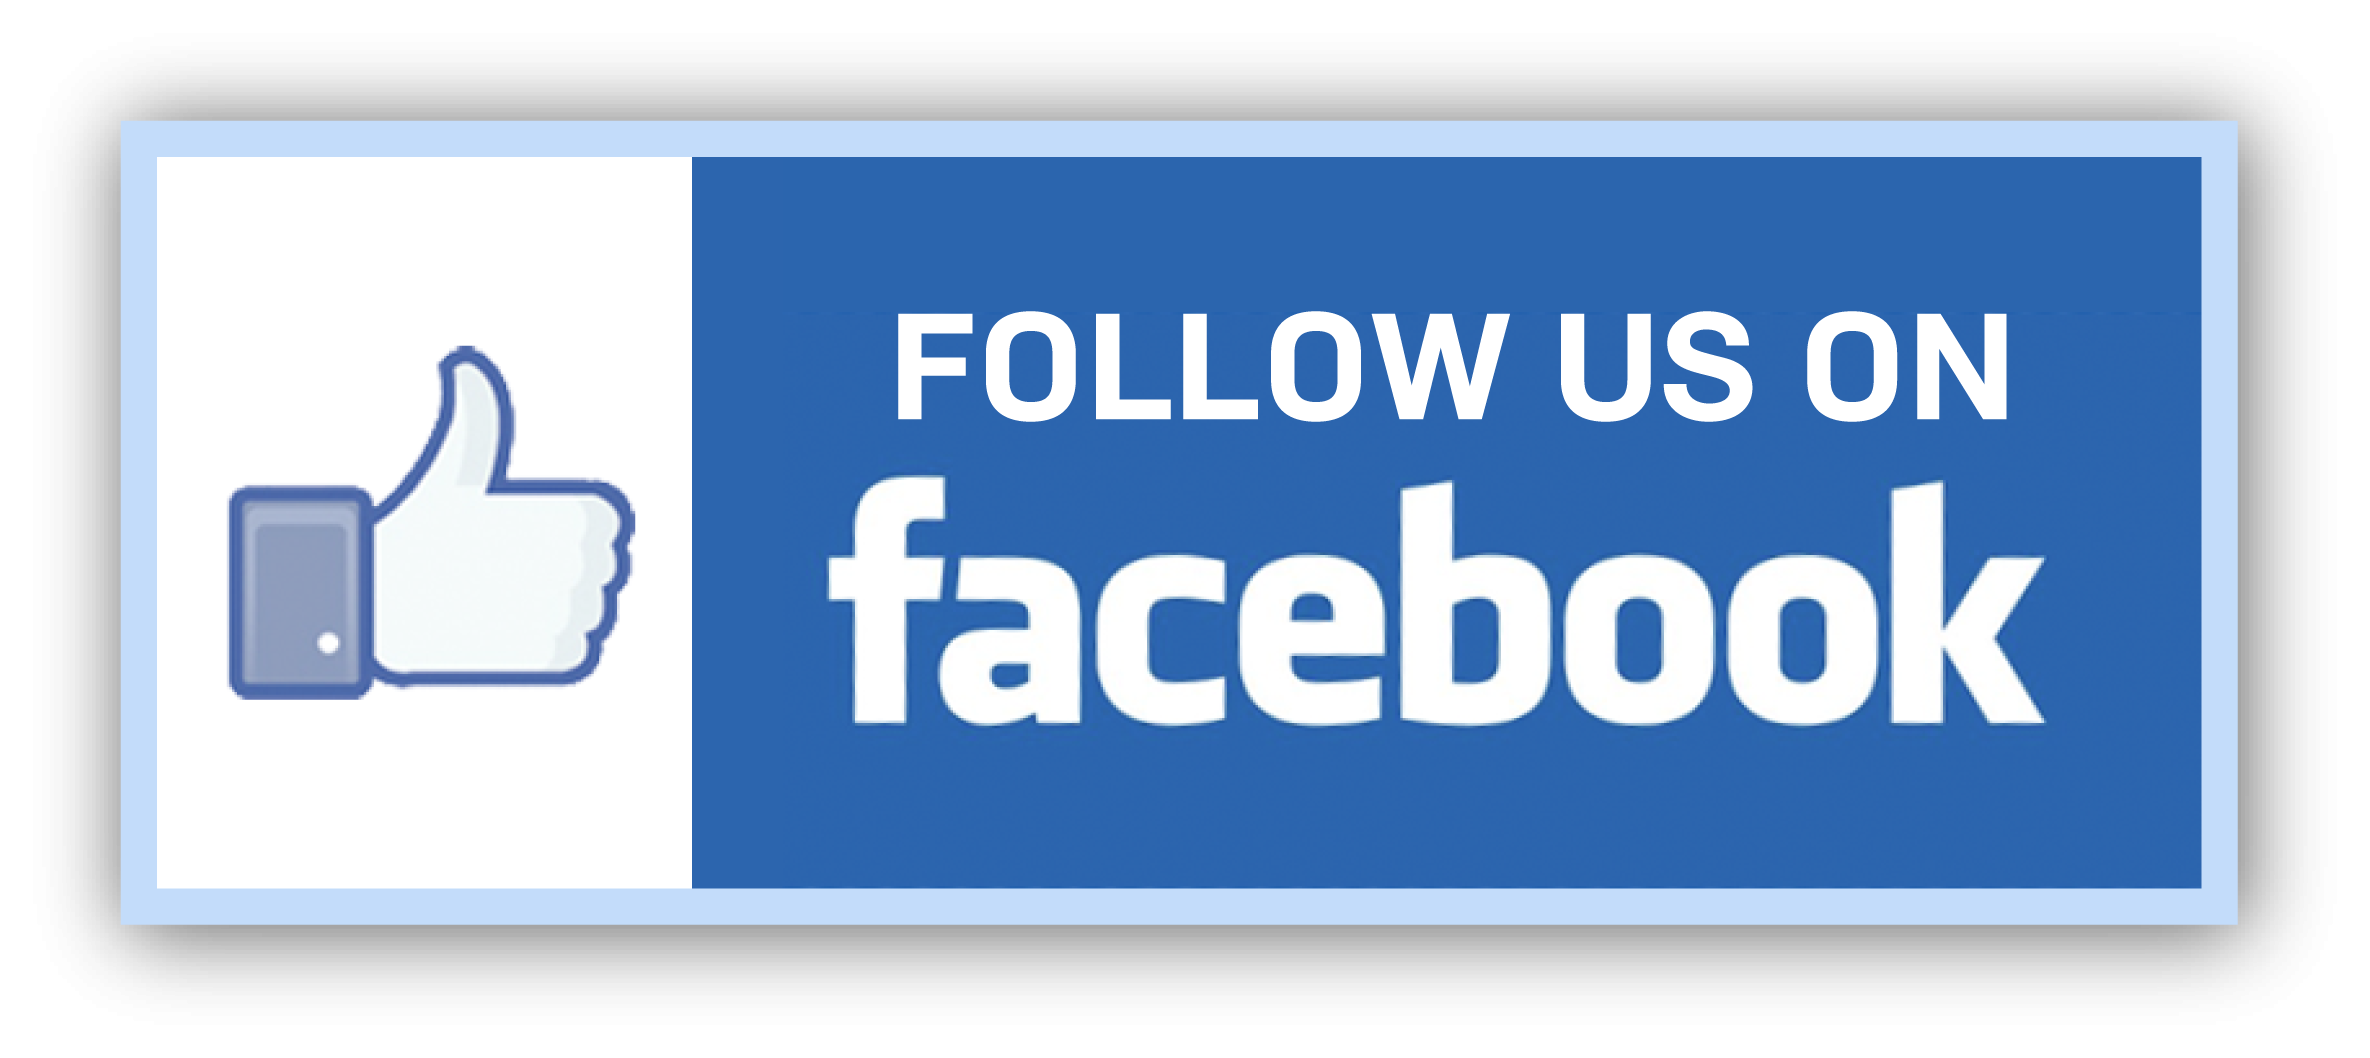 1499793234facebook-icon-follow-us-on-fb.png